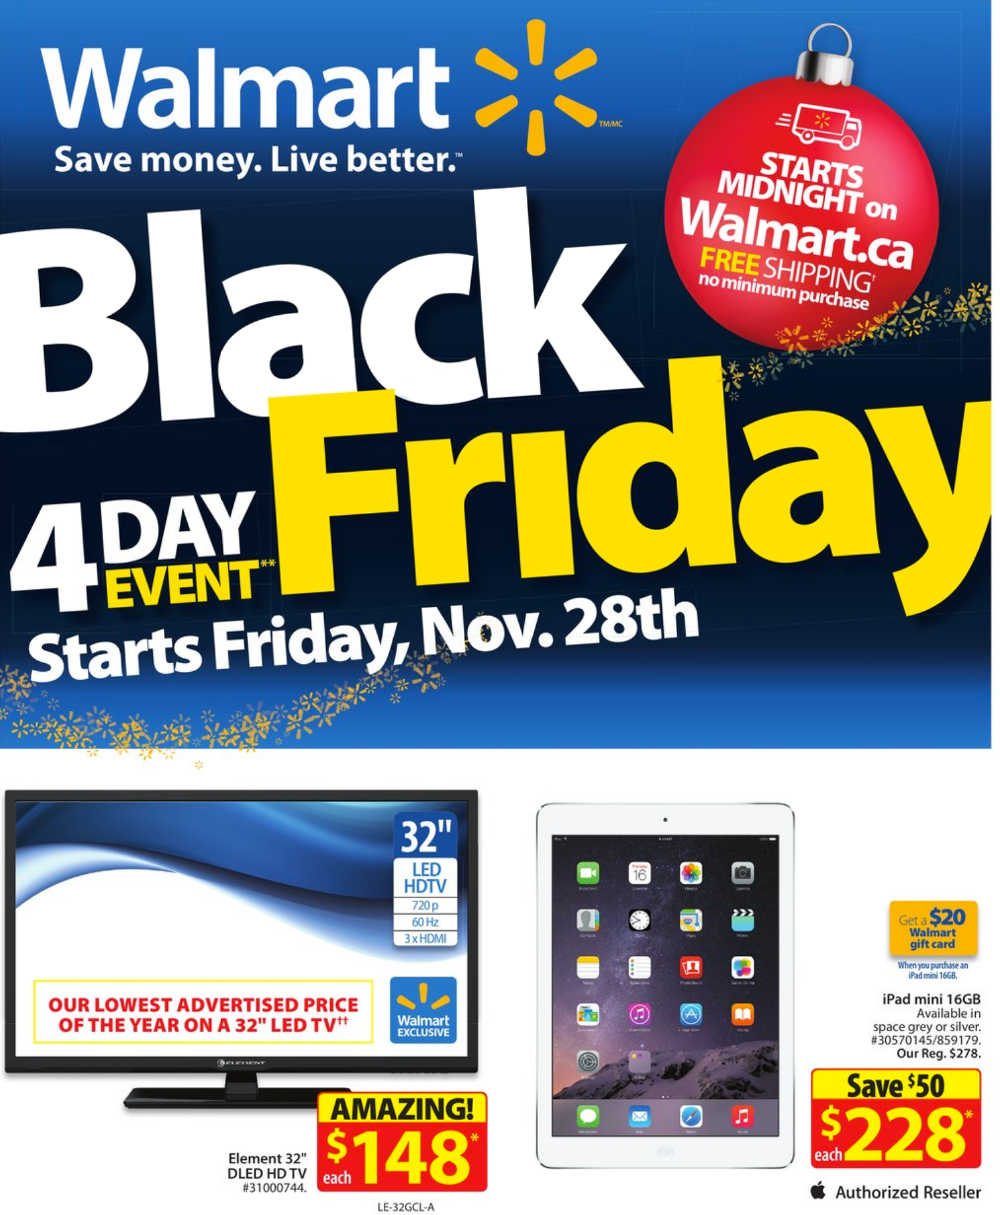 Nov 12,  · Walmart is remaking Black Friday by ditching doorbusters as part of a strategy to make holiday shopping easier for customers. Instead, it plans to .